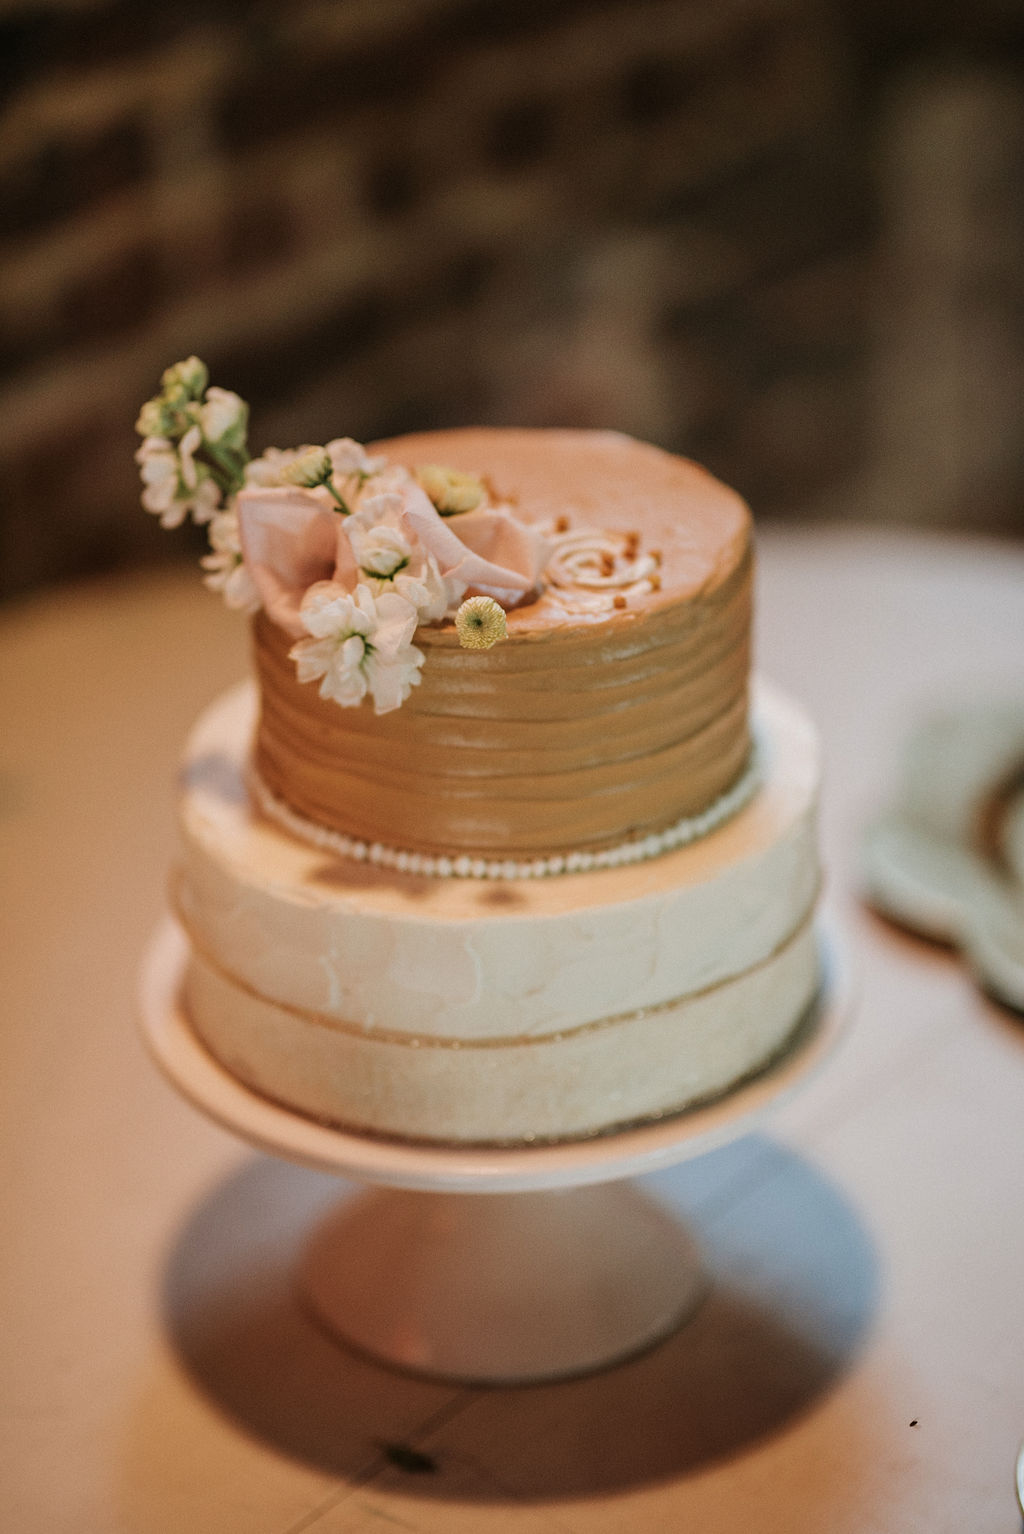 wedding cake detail shot at Inn at the Old Silk Mill